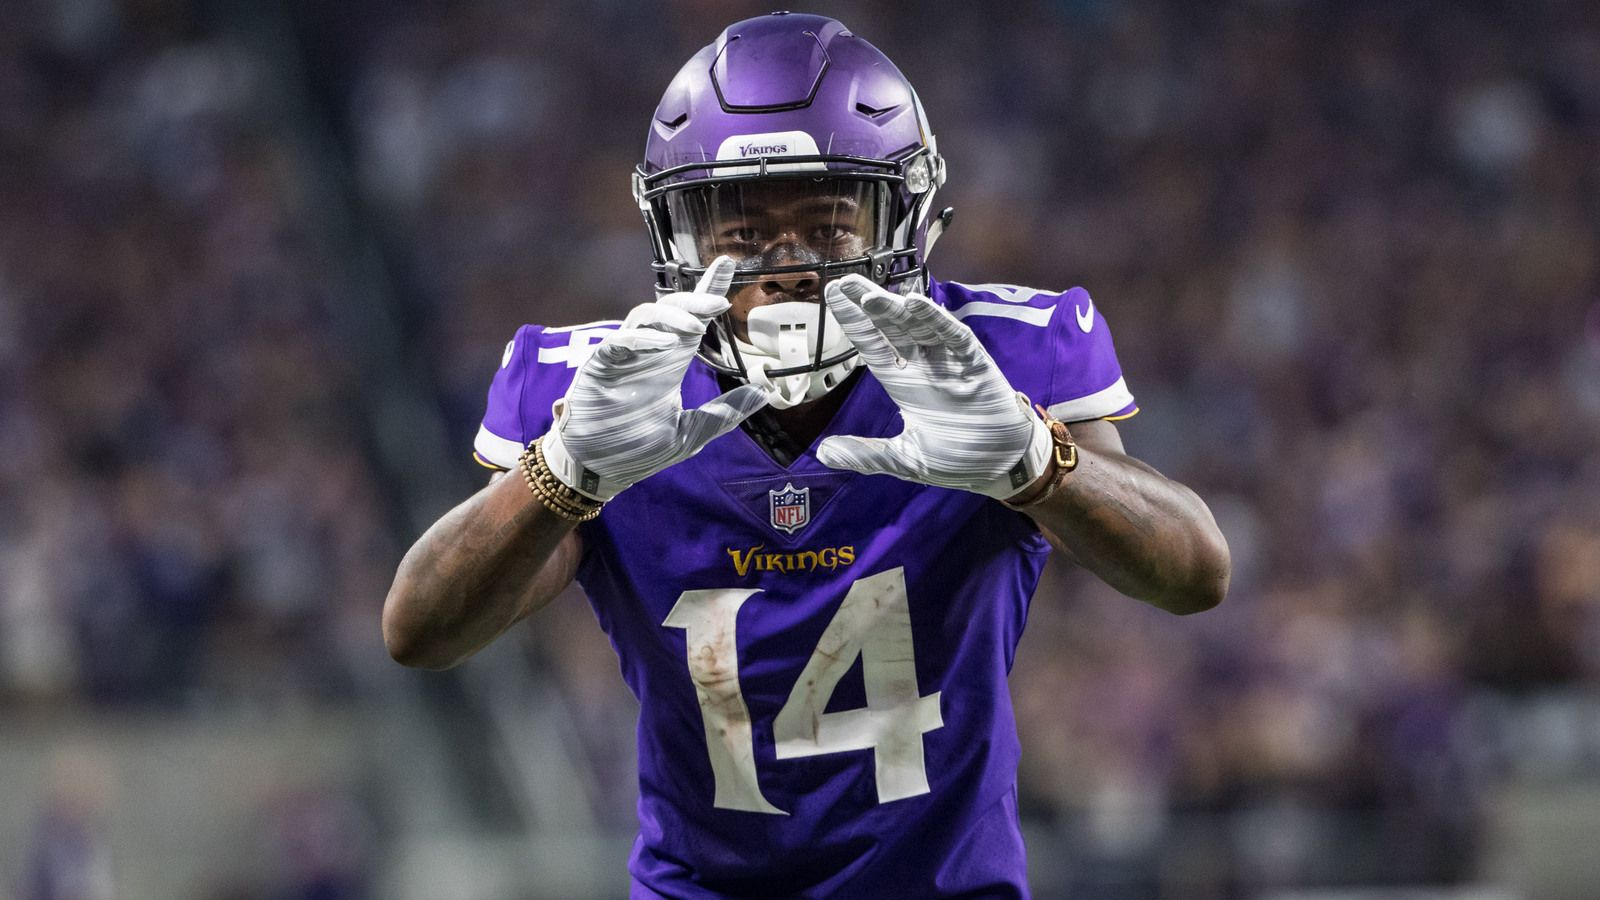 Stefon Diggs punts ball into stands after scoring TD – The Sports News